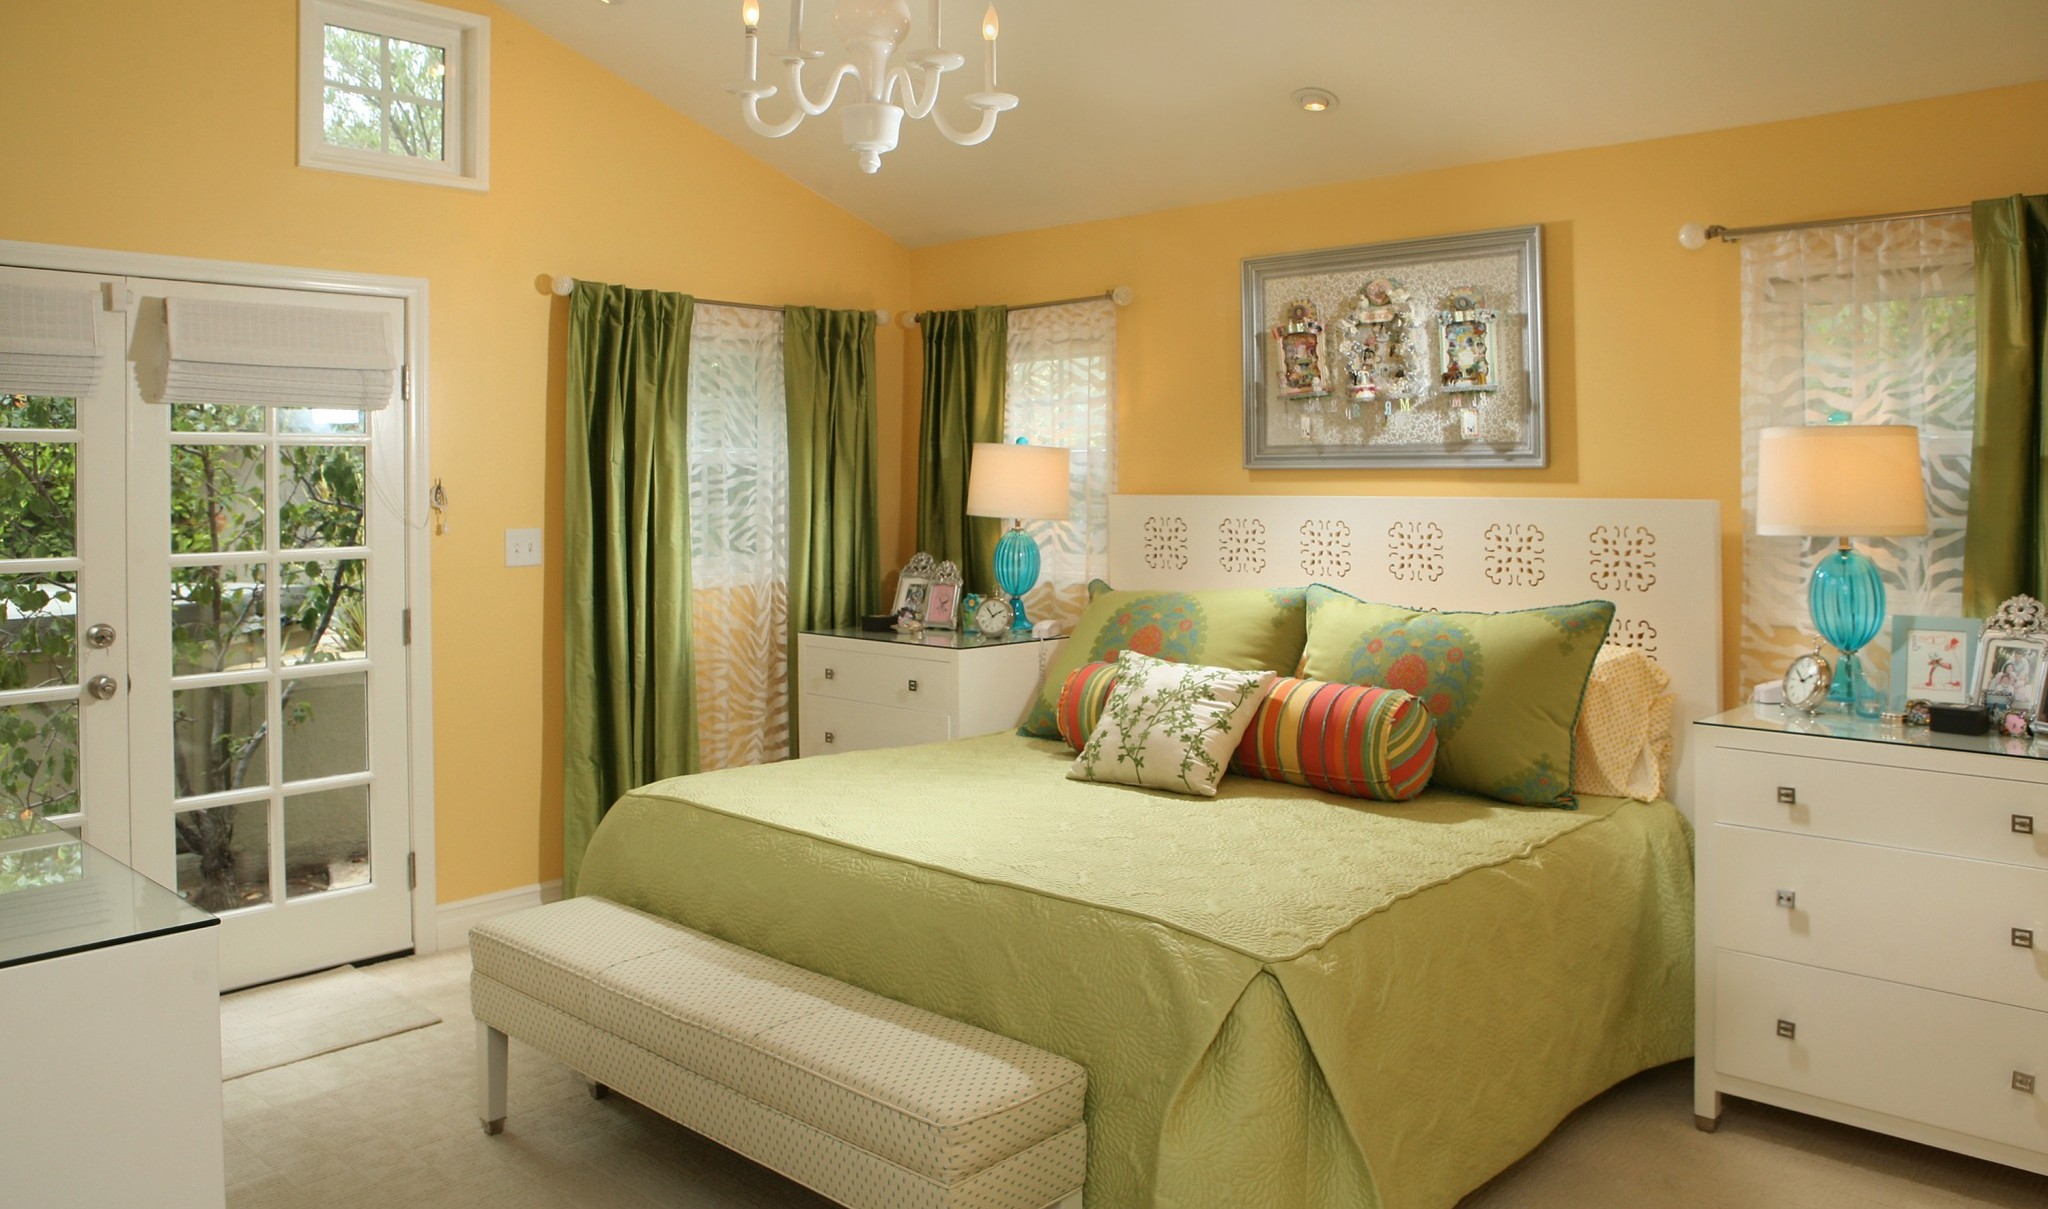 Adorable Bedroom With Best Color Paint For Small Room Of Orange And Green Comfortable Bedding